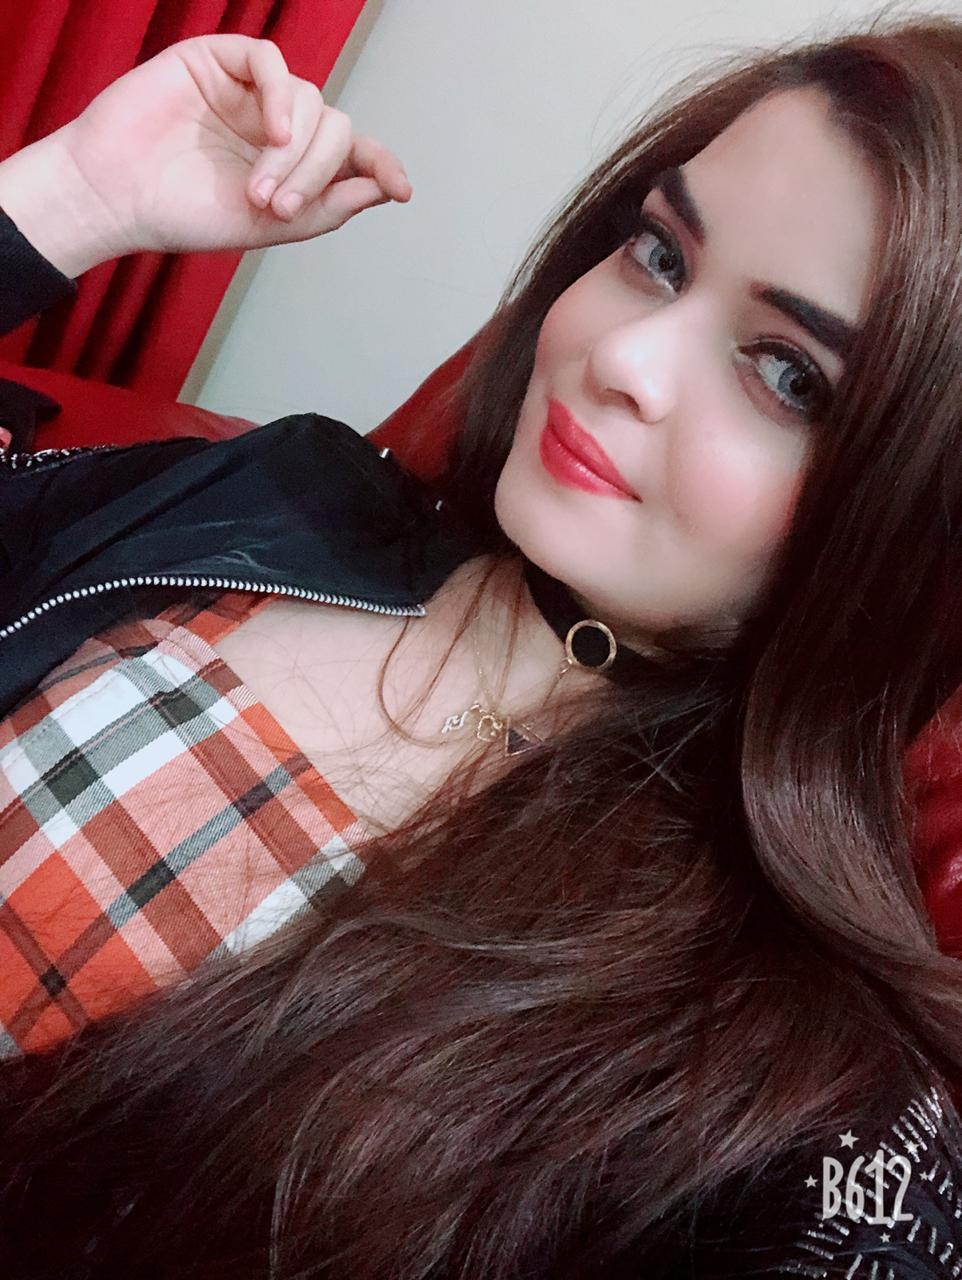 Best Nice Call-Girls In Kuala Lumpur Available To Date Or Sex